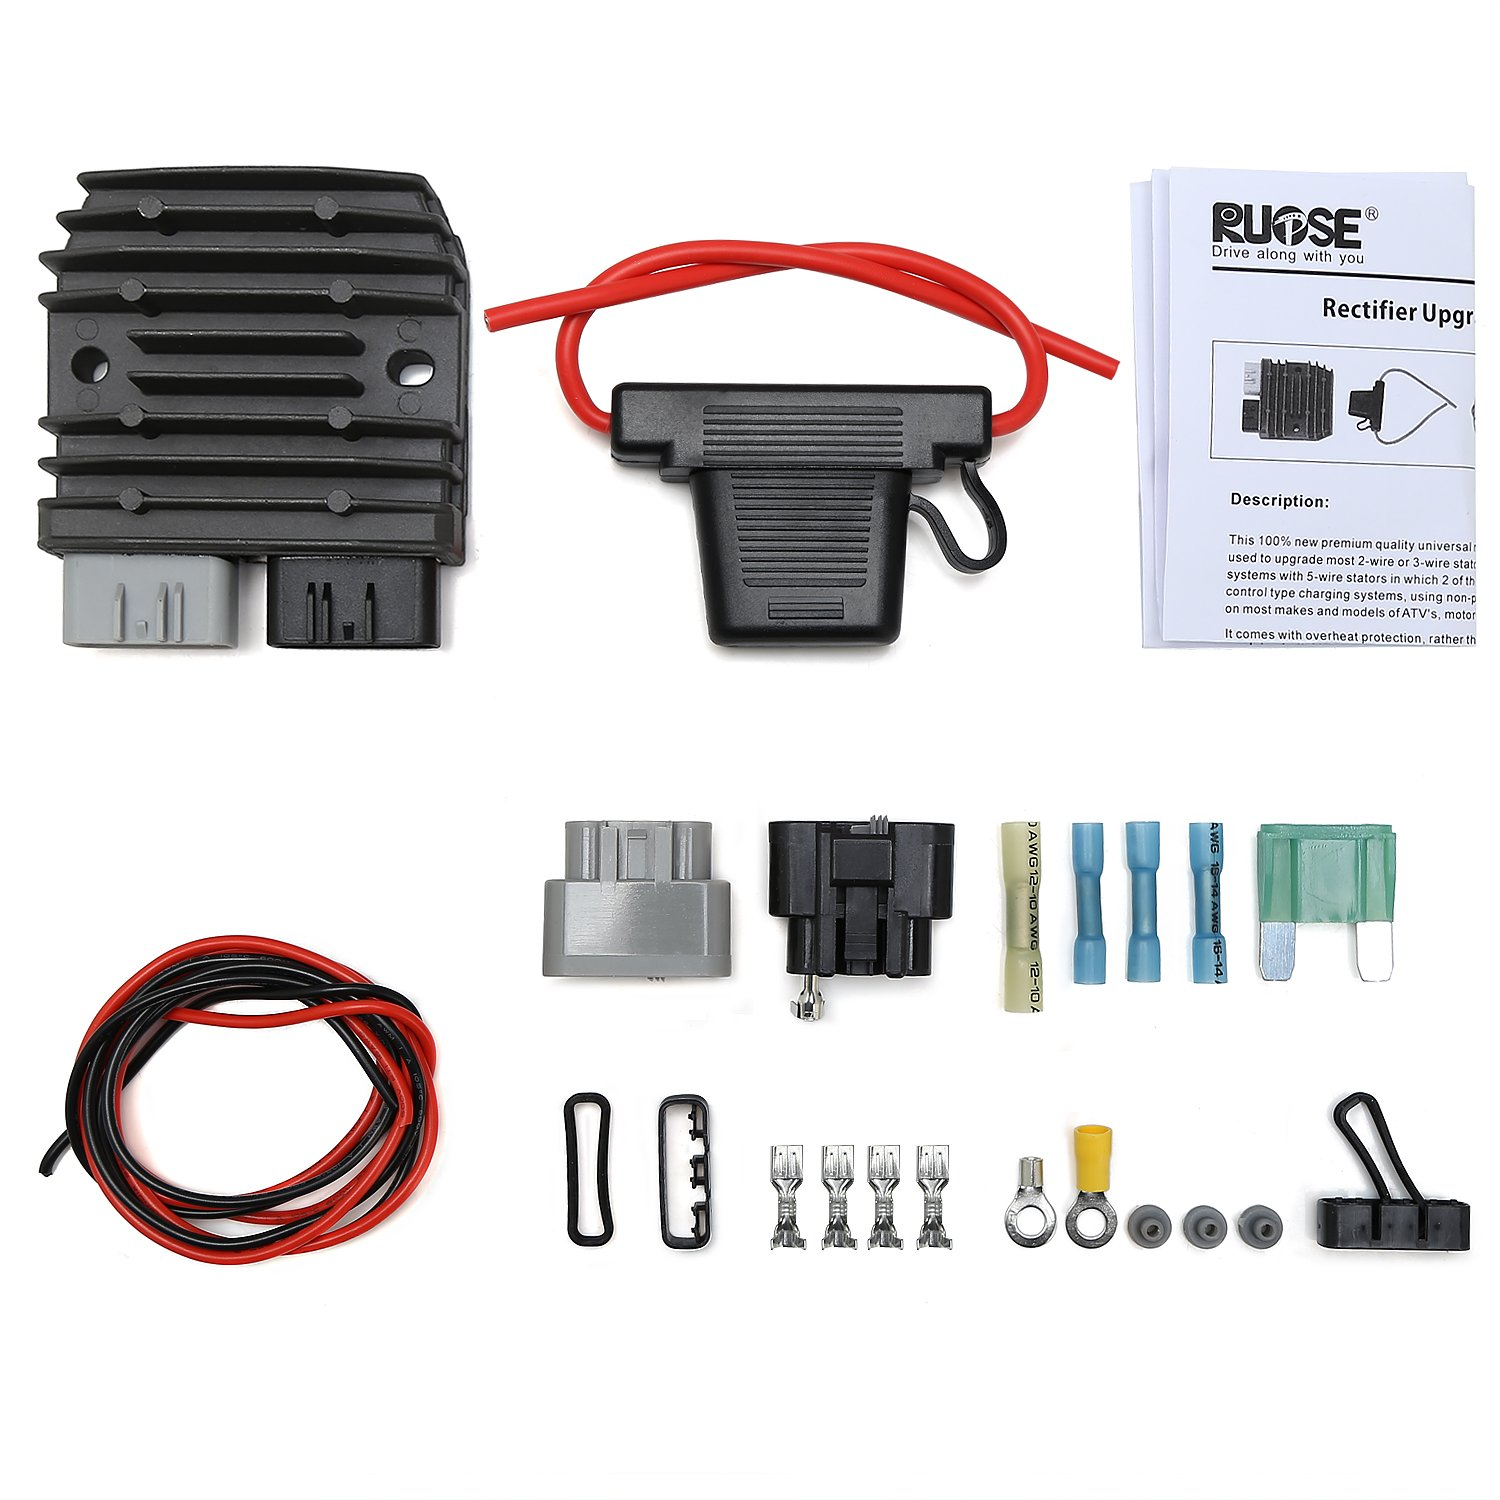 Amazon.com: Rupse FH020AA FH012AA Mosfet Regulator Rectifier Kit for ...